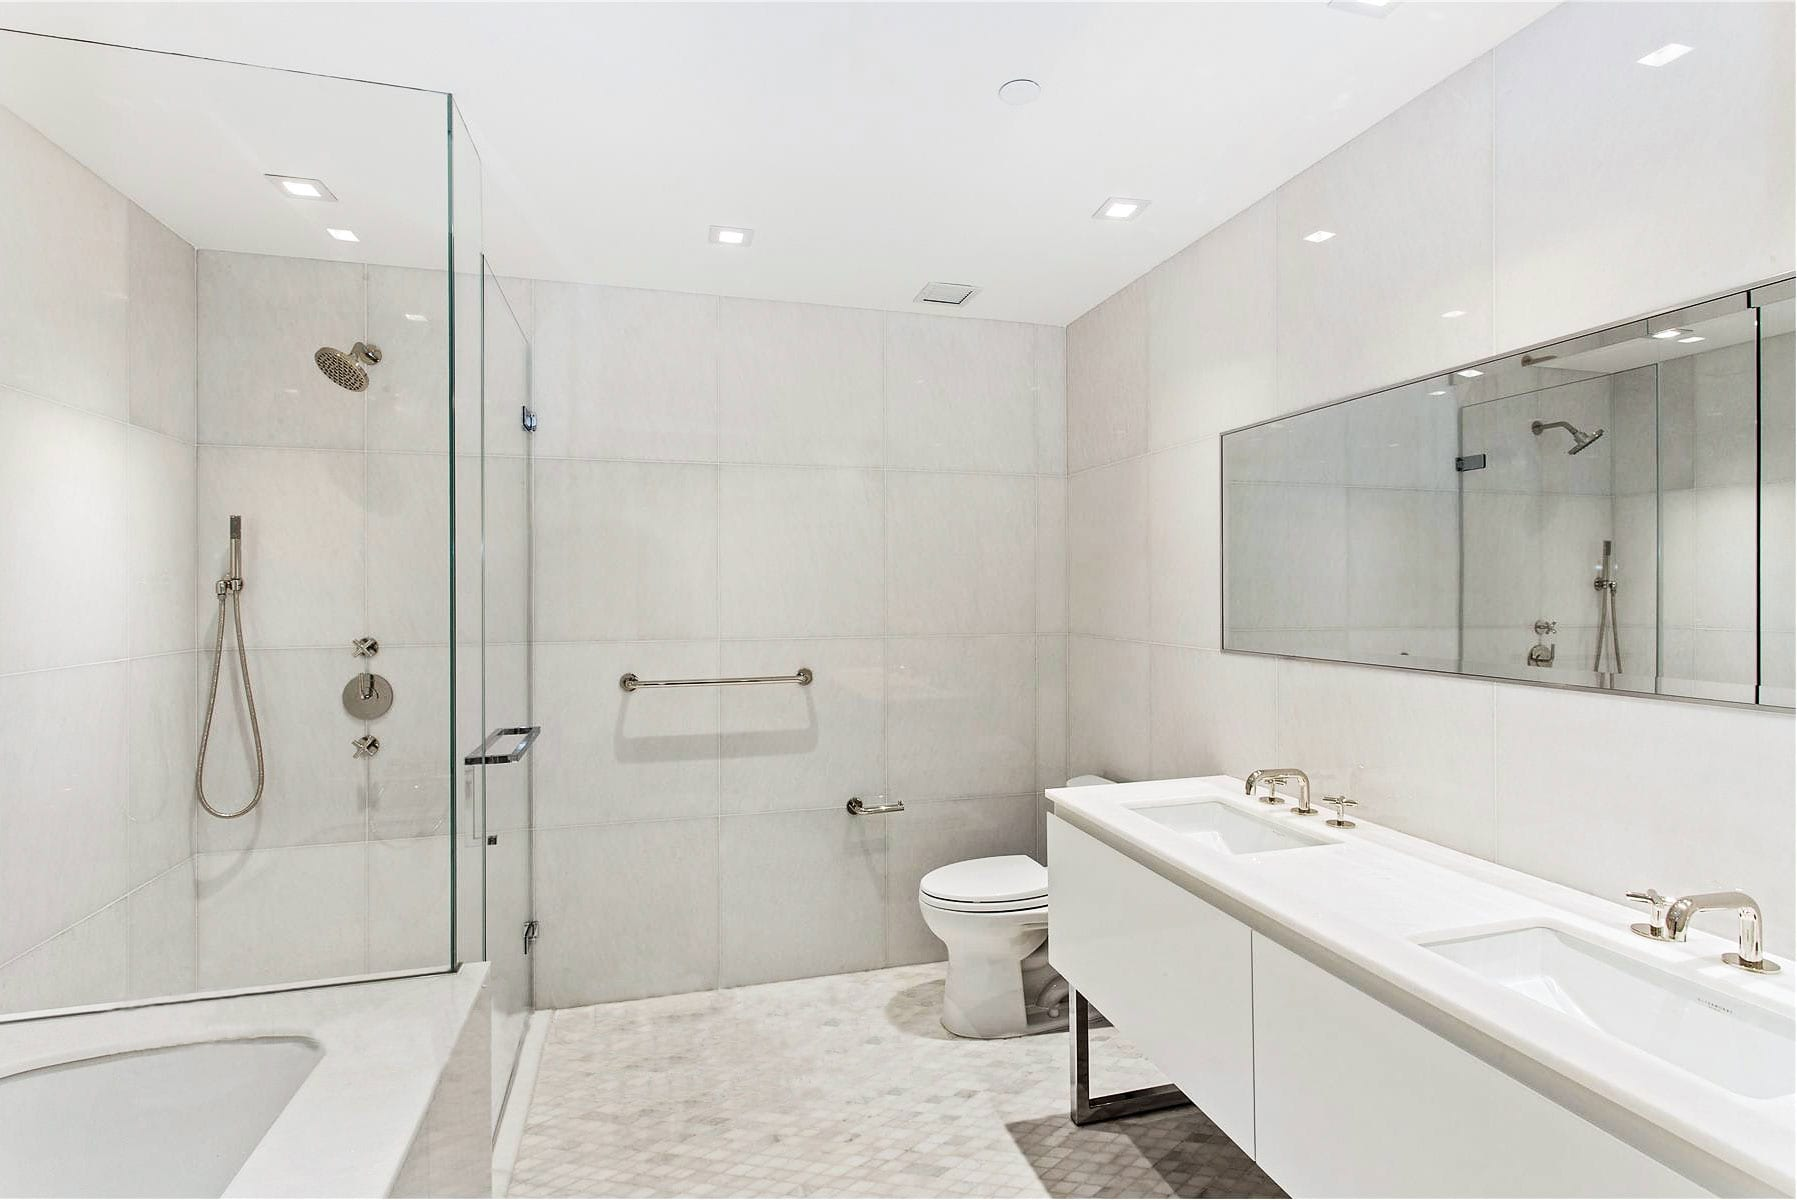 Stoneline-Group-Diamond-White-Marble-Collection-Marble-Tile-bathroom-marble-design-photo